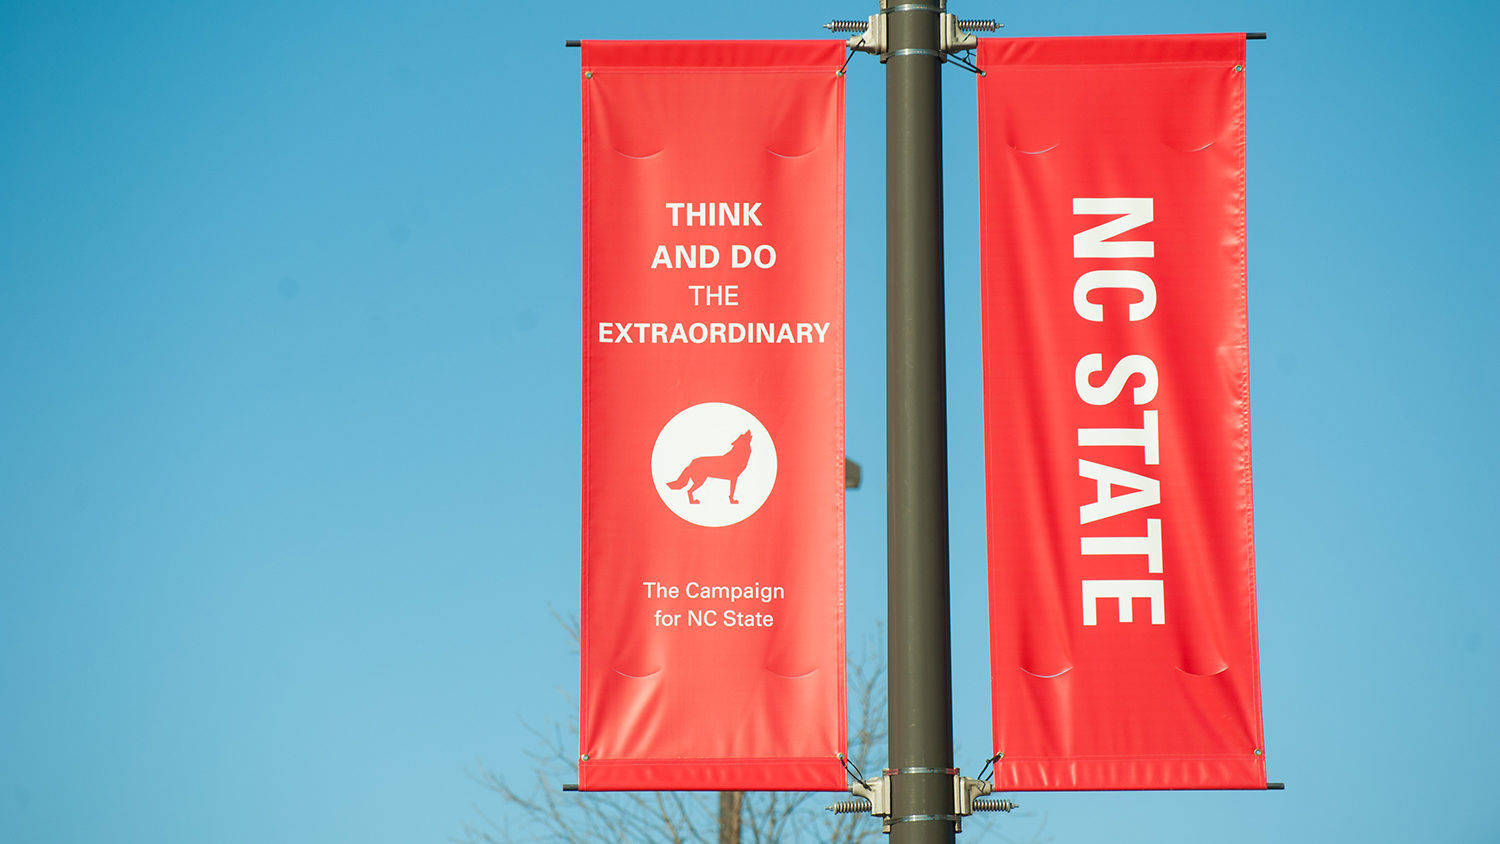 Think and Do banners